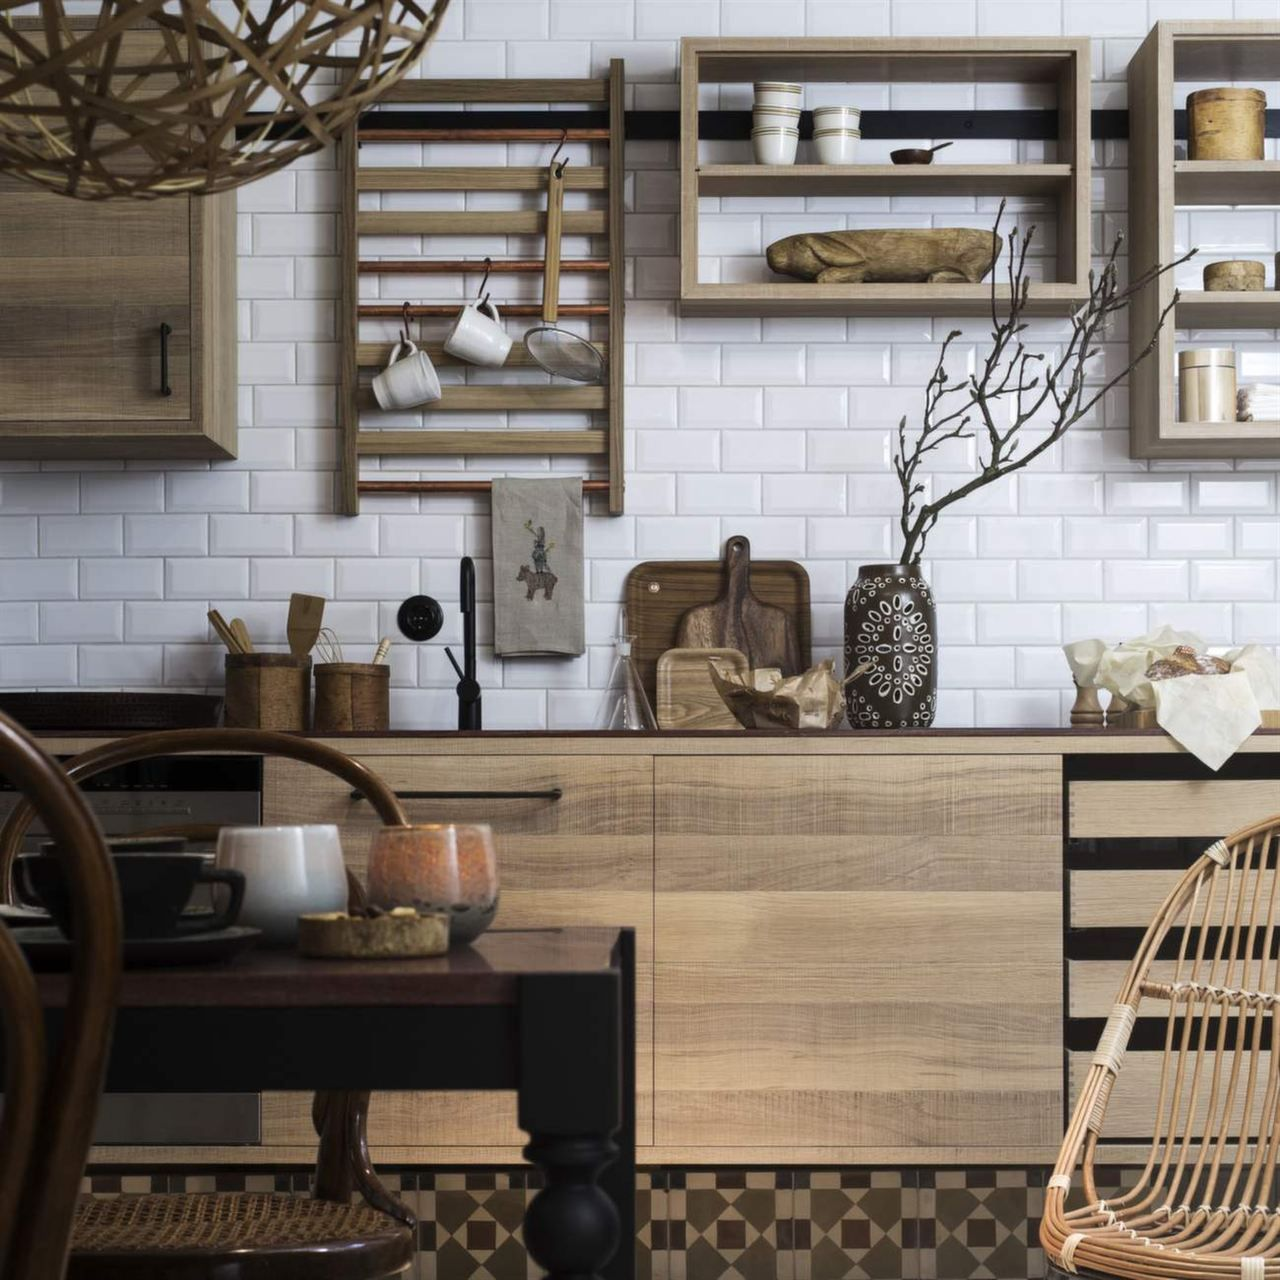 33 Modern Style Cozy Wooden Kitchen Design Ideas: Kitchen - French Cleats Instead Of Bars #build